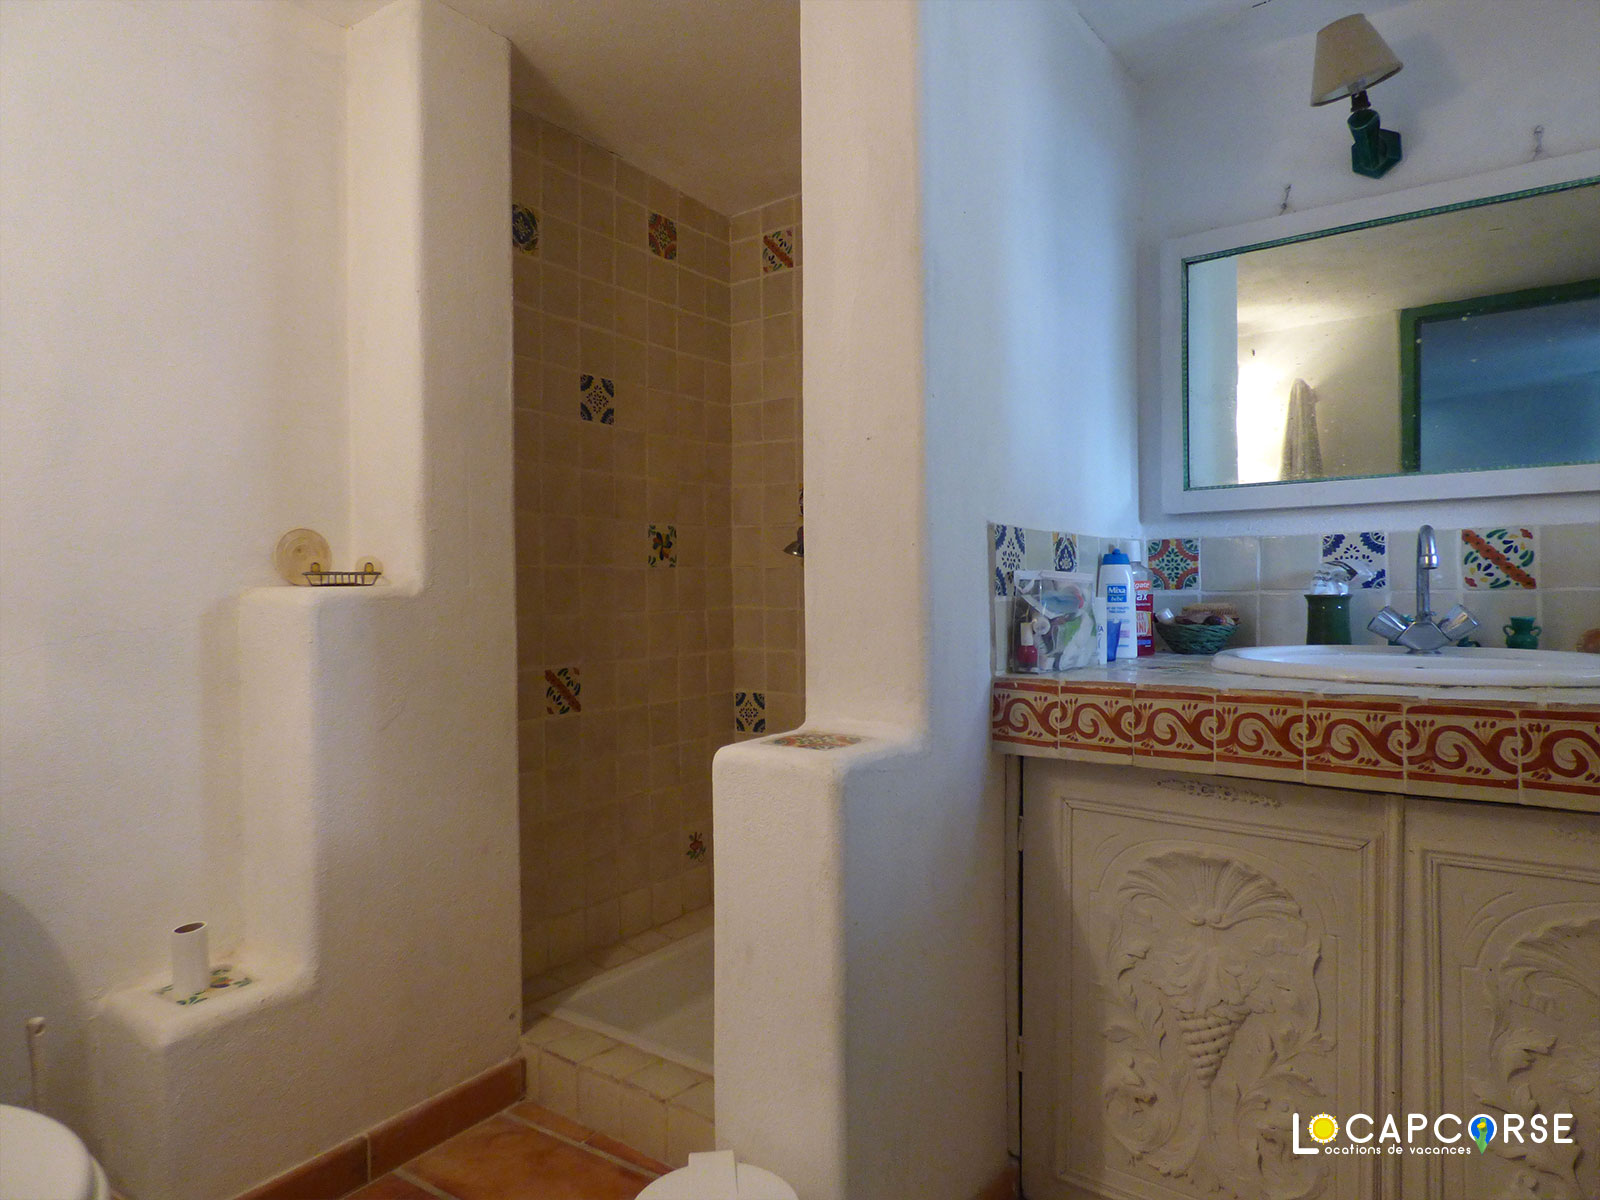 Locations Cap Corse - View of the bathroom on the ground floor of the small house